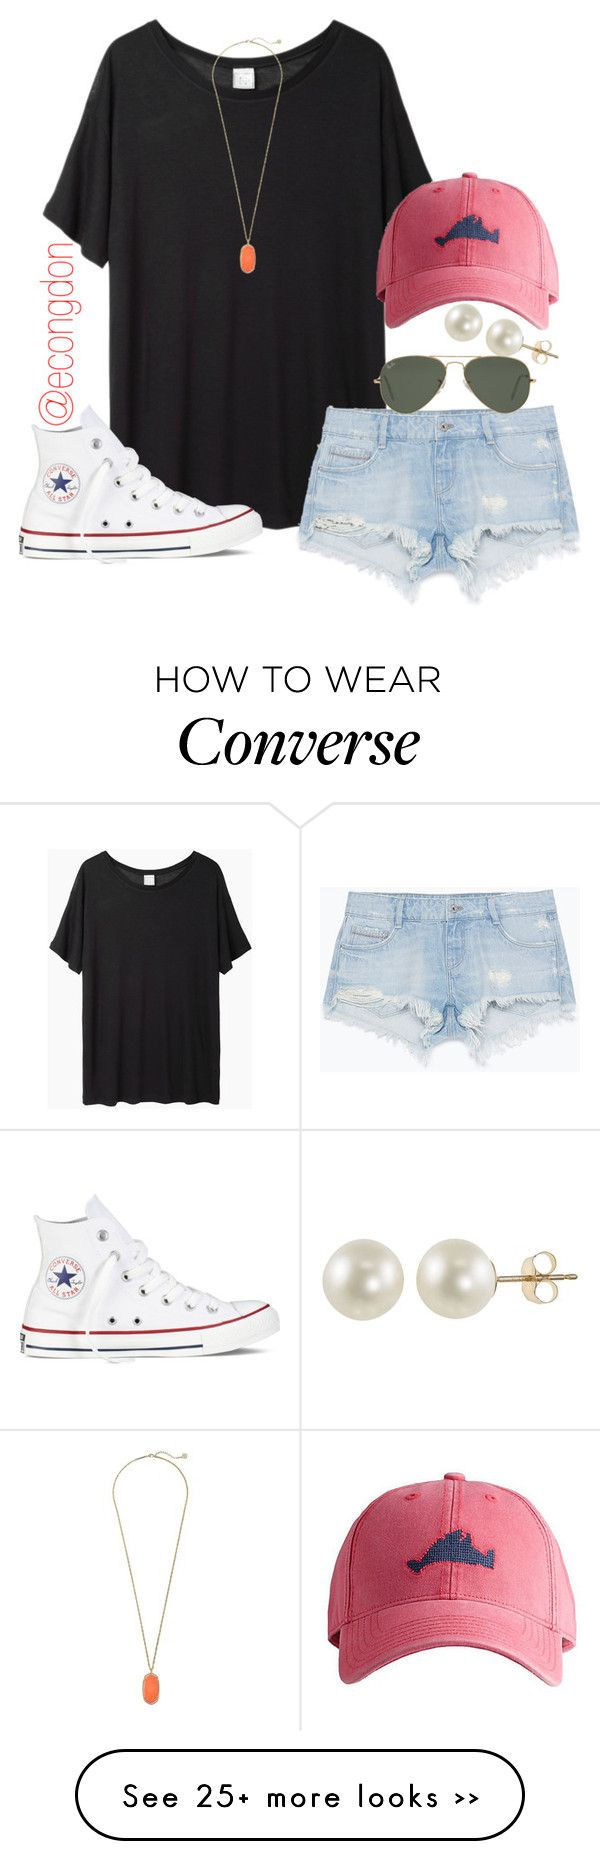 """""""basically the same as my last set but different colors"""" by econgdon on Polyvore featuring Base Range, Harding-Lane, Zara, PearLustre by Imperial, Ray-Ban, Converse and Kendra Scott"""